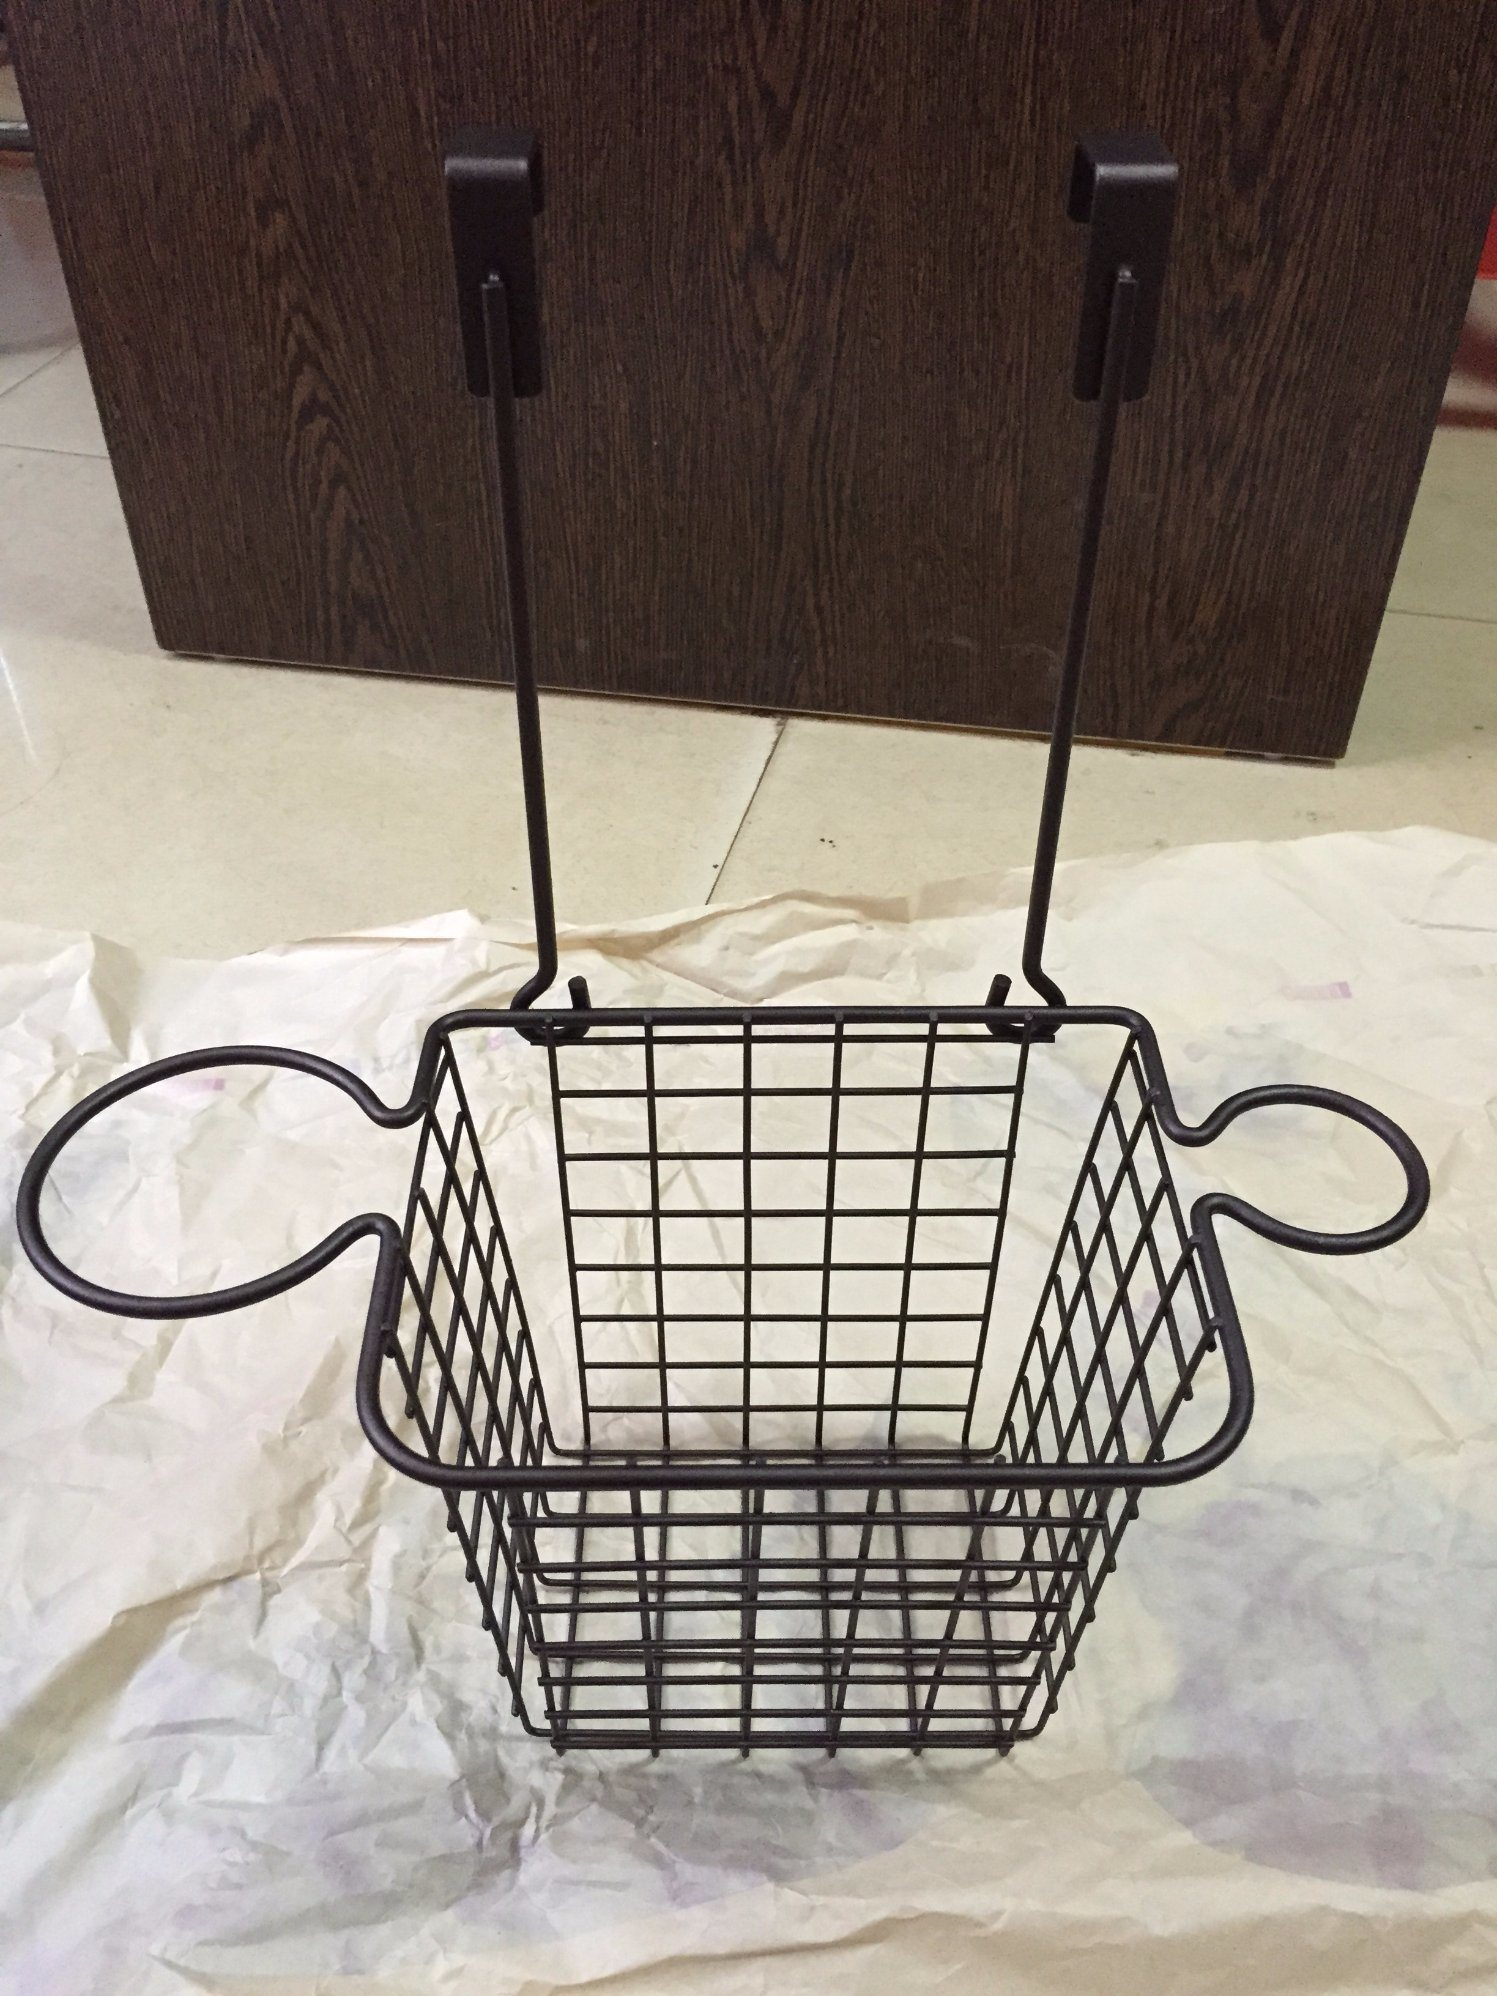 China Over The Cabinet Door Hair Dryer Holder With Storage Basket